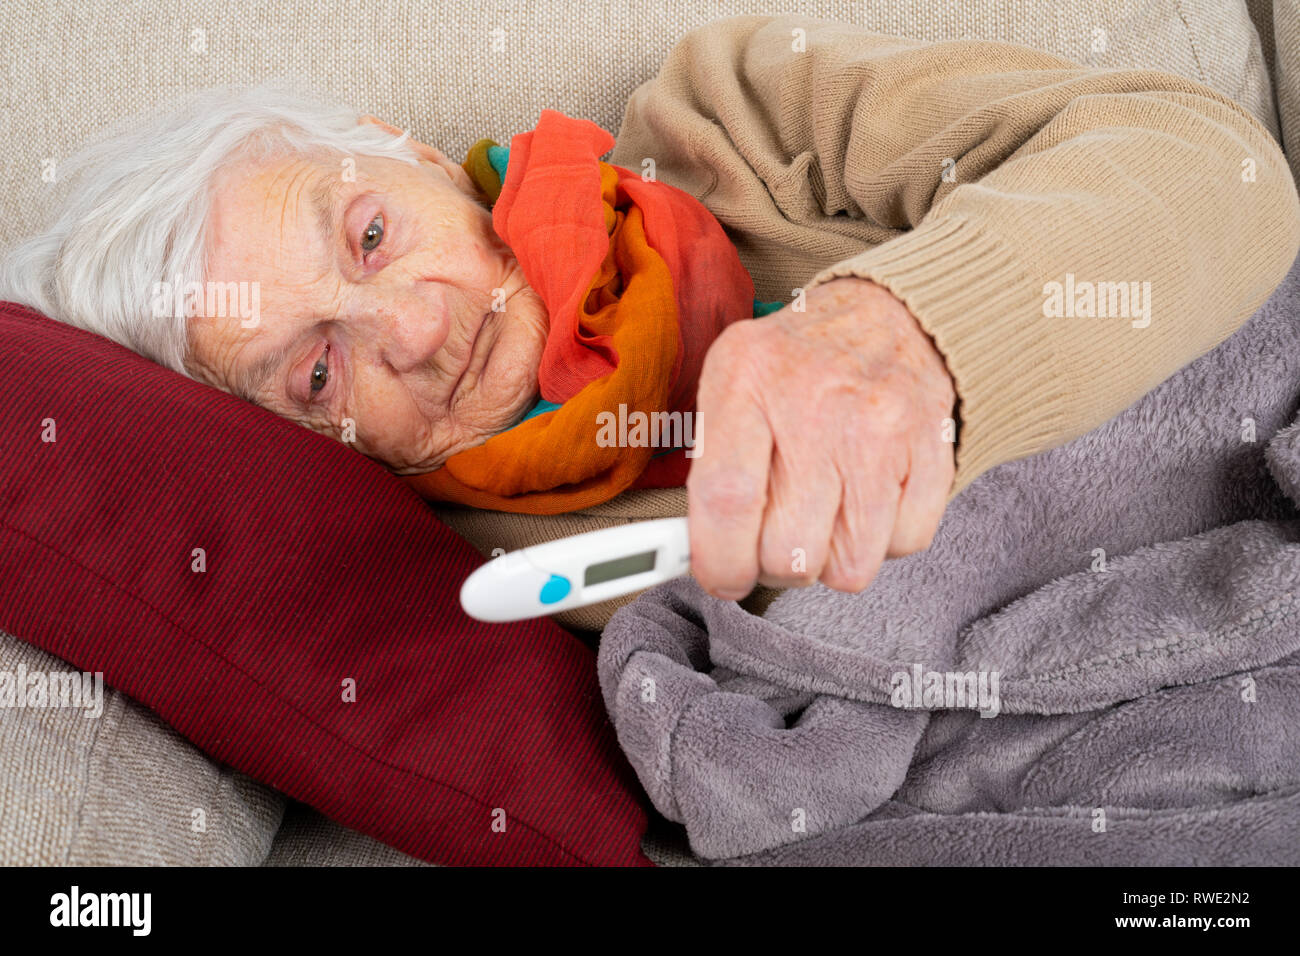 Elderly sick woman lying on the couch holding digital thermometer in her hands - fever, influenza, pneumonia - Stock Image